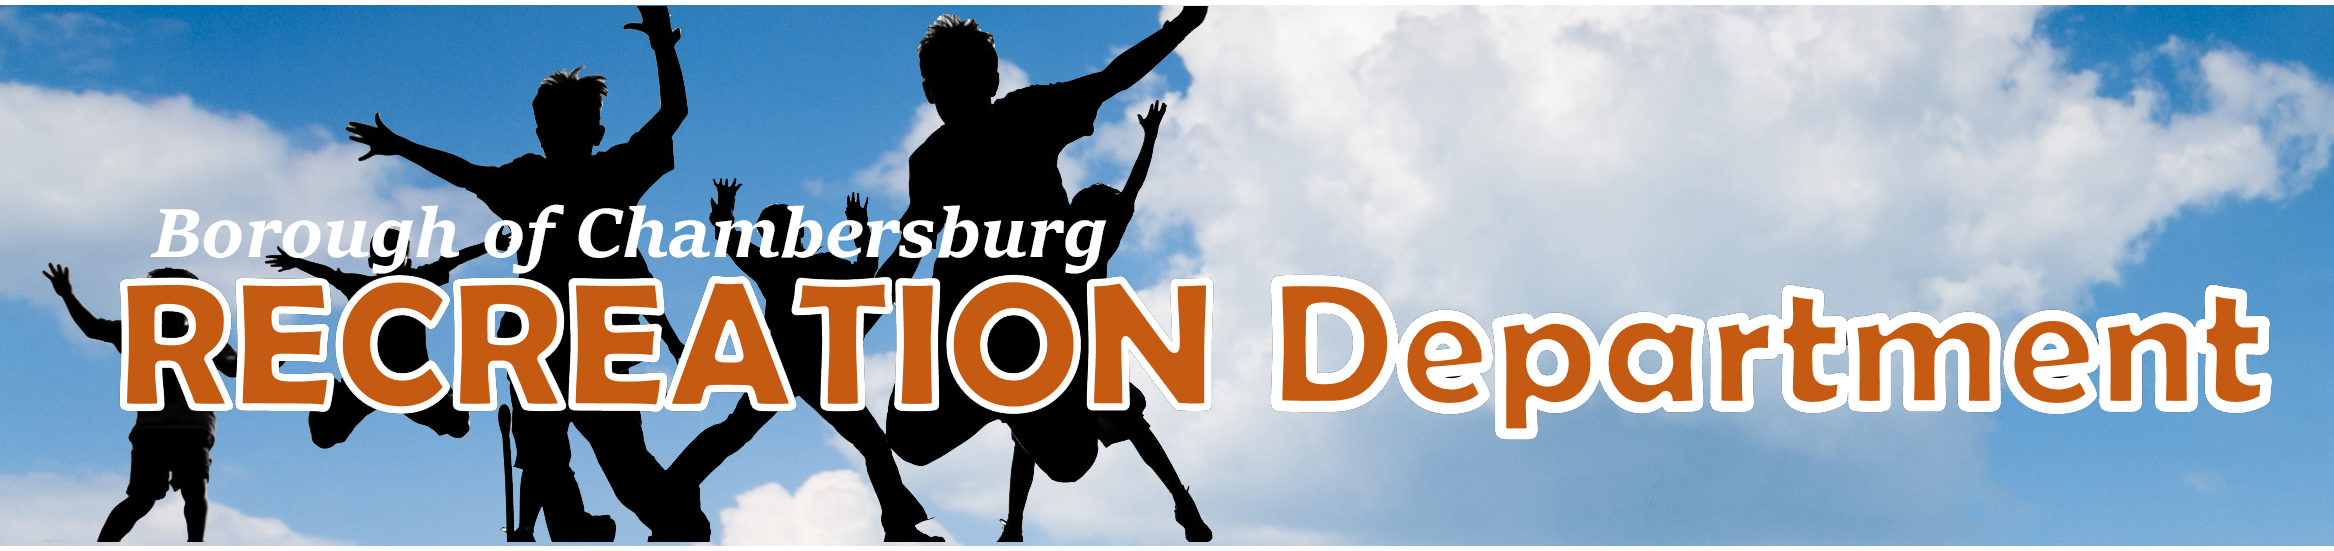 Chambersburg Recreation Center Announcements